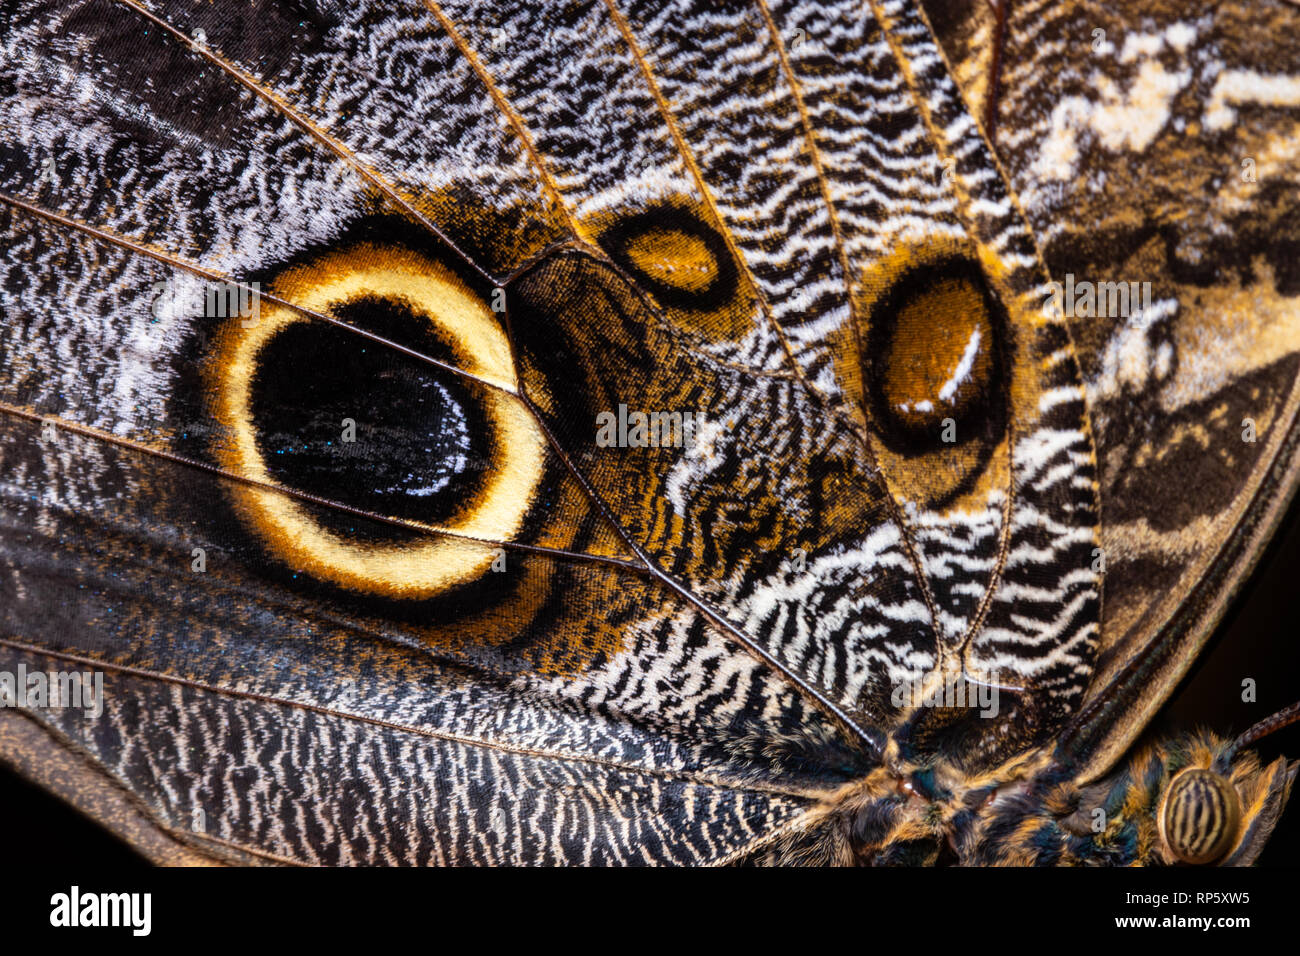 Butterfly wing texture, close up of detail of butterfly wing for background. - Stock Image